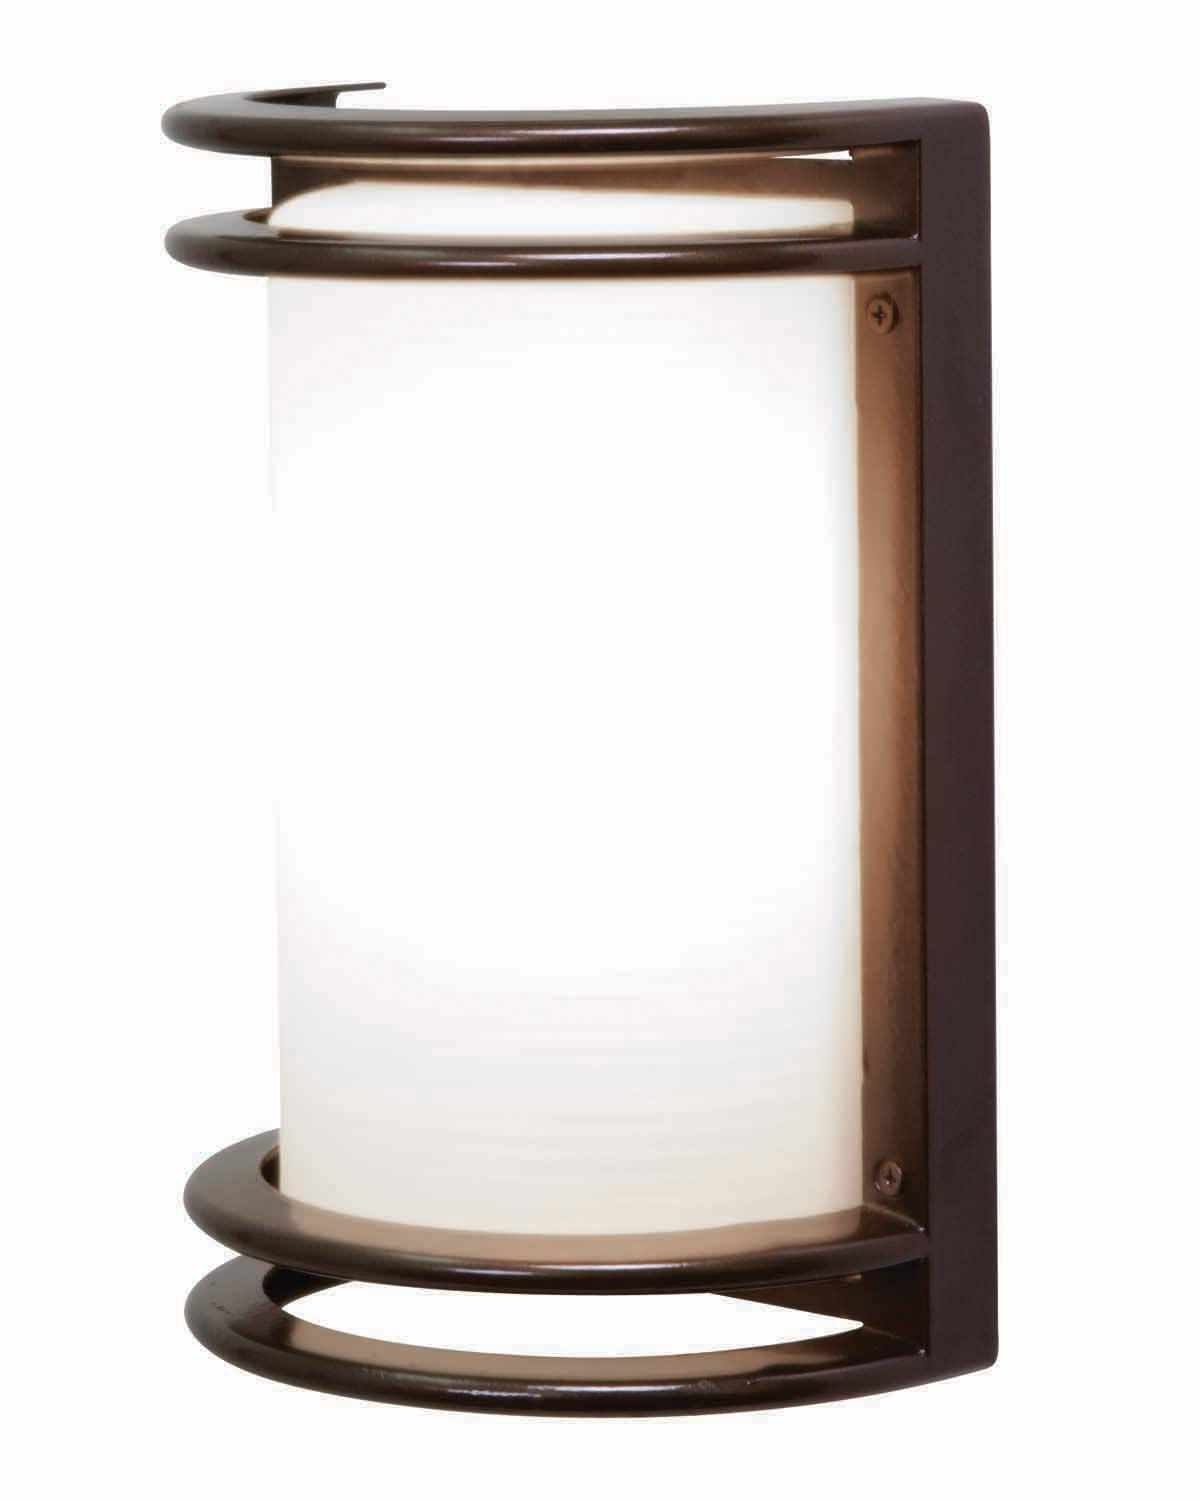 Bronze Zephyr Contemporary Outdoor Wall Sconce — Photo Designs Inside 2018 Residential Outdoor Wall Lighting (Gallery 10 of 20)